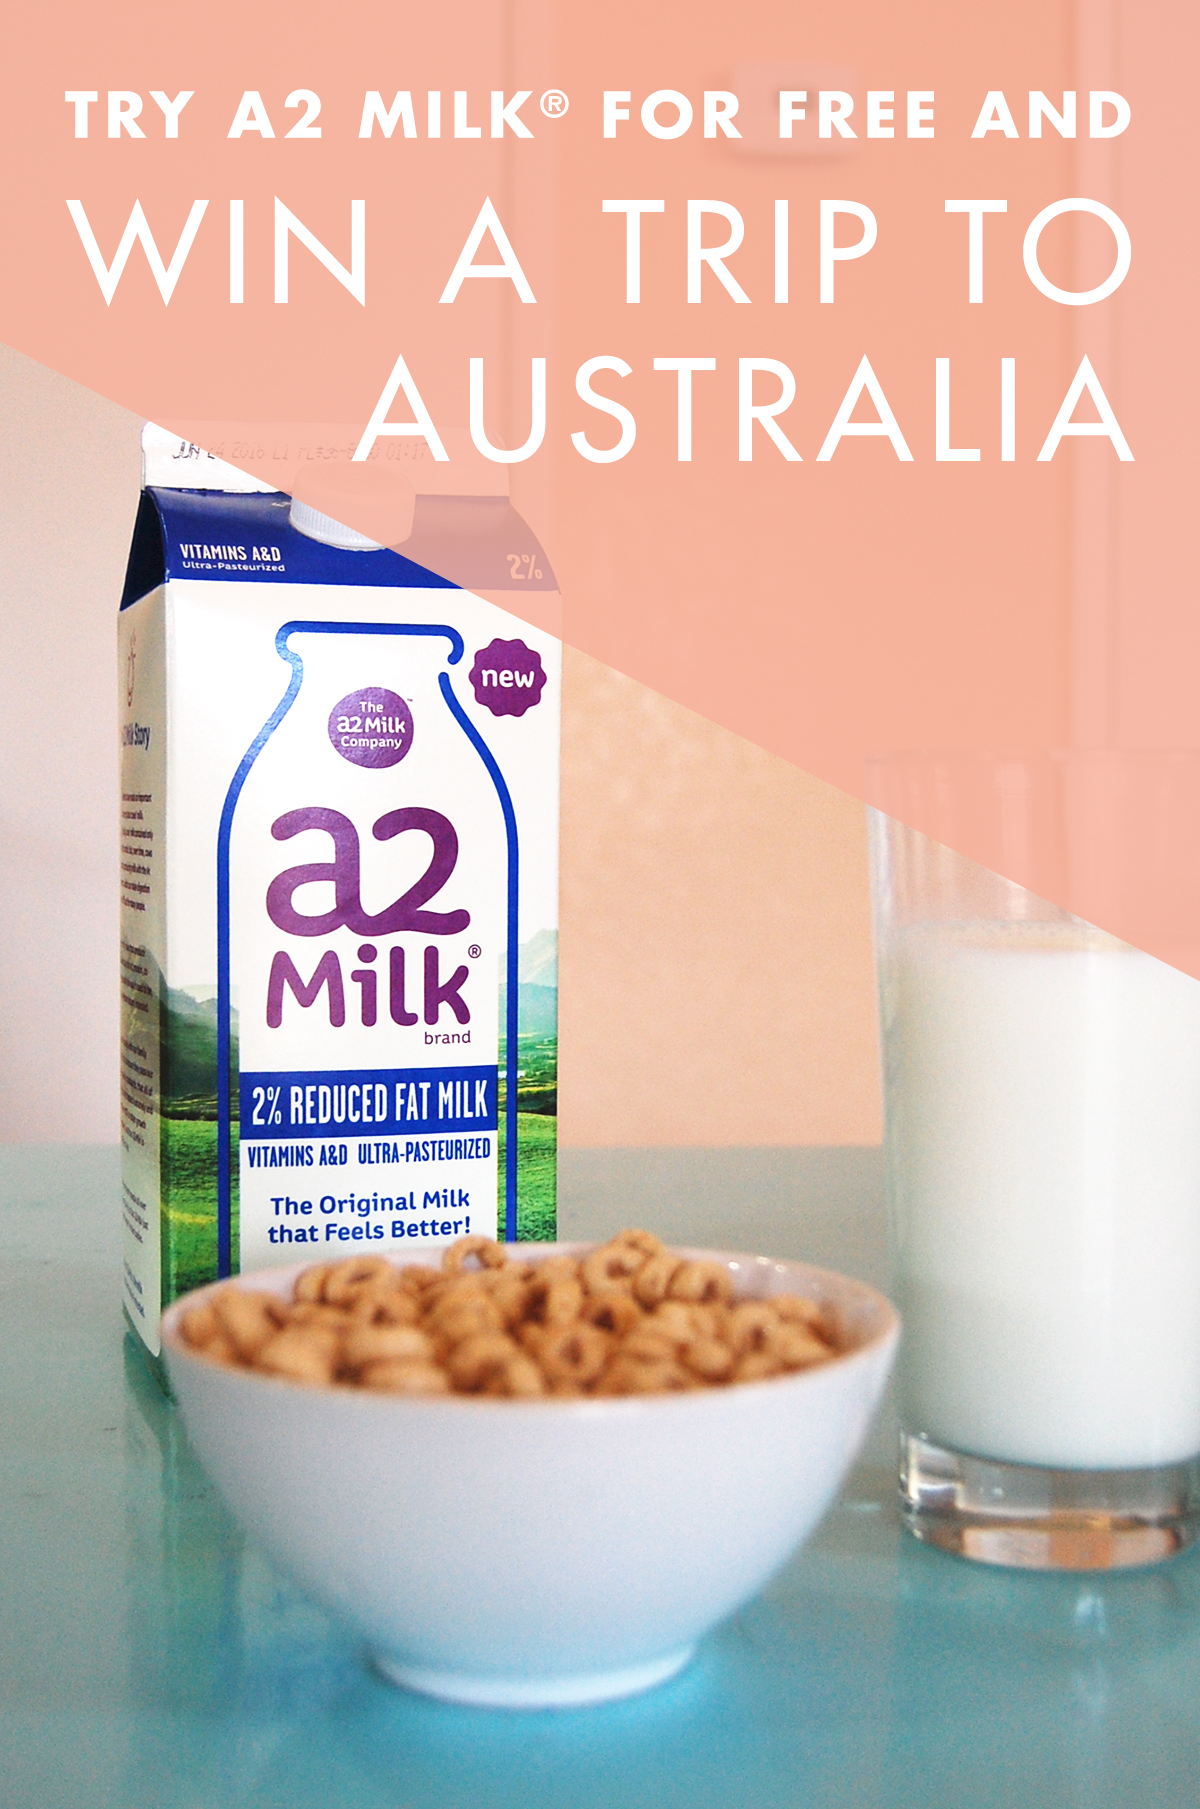 Try a2 Milk for Free and Win a Trip to Australia